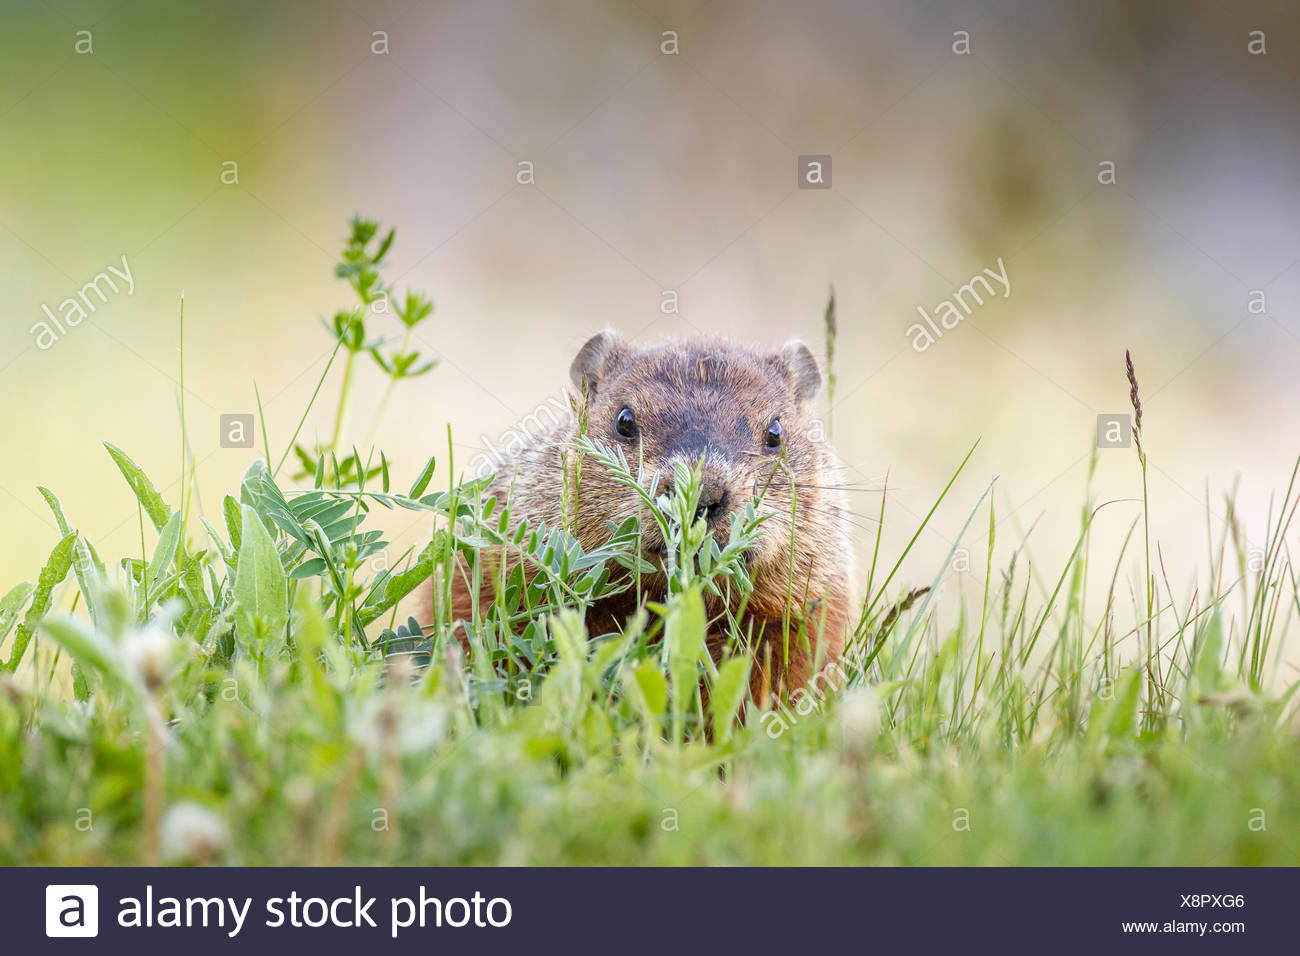 Woodchuck, also called groundhog (Marmota monax) in Forillon National Park, Quebec, Canada - Stock Image